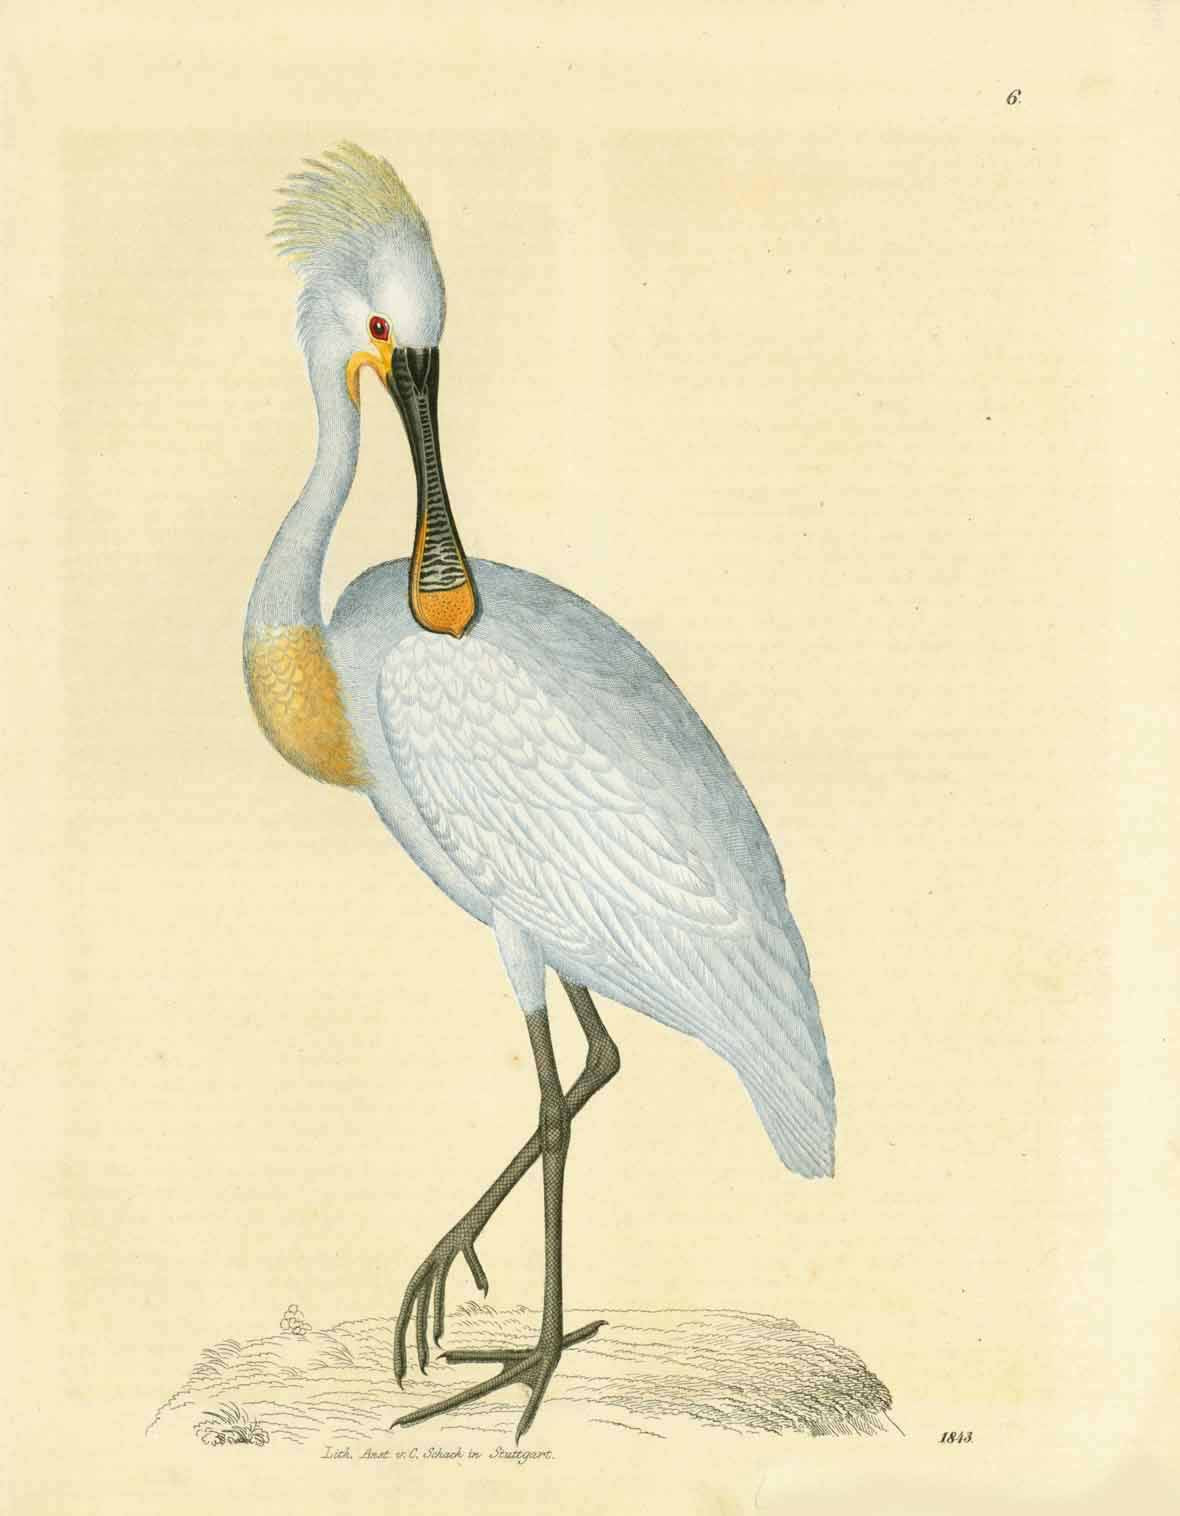 Ohne Titel. Llöffler (Plataleae Linne) (Spoonbill bird)  Copper etching by an unknown artist.  Original hand coloring  Published in Stuttgart, dated 1843